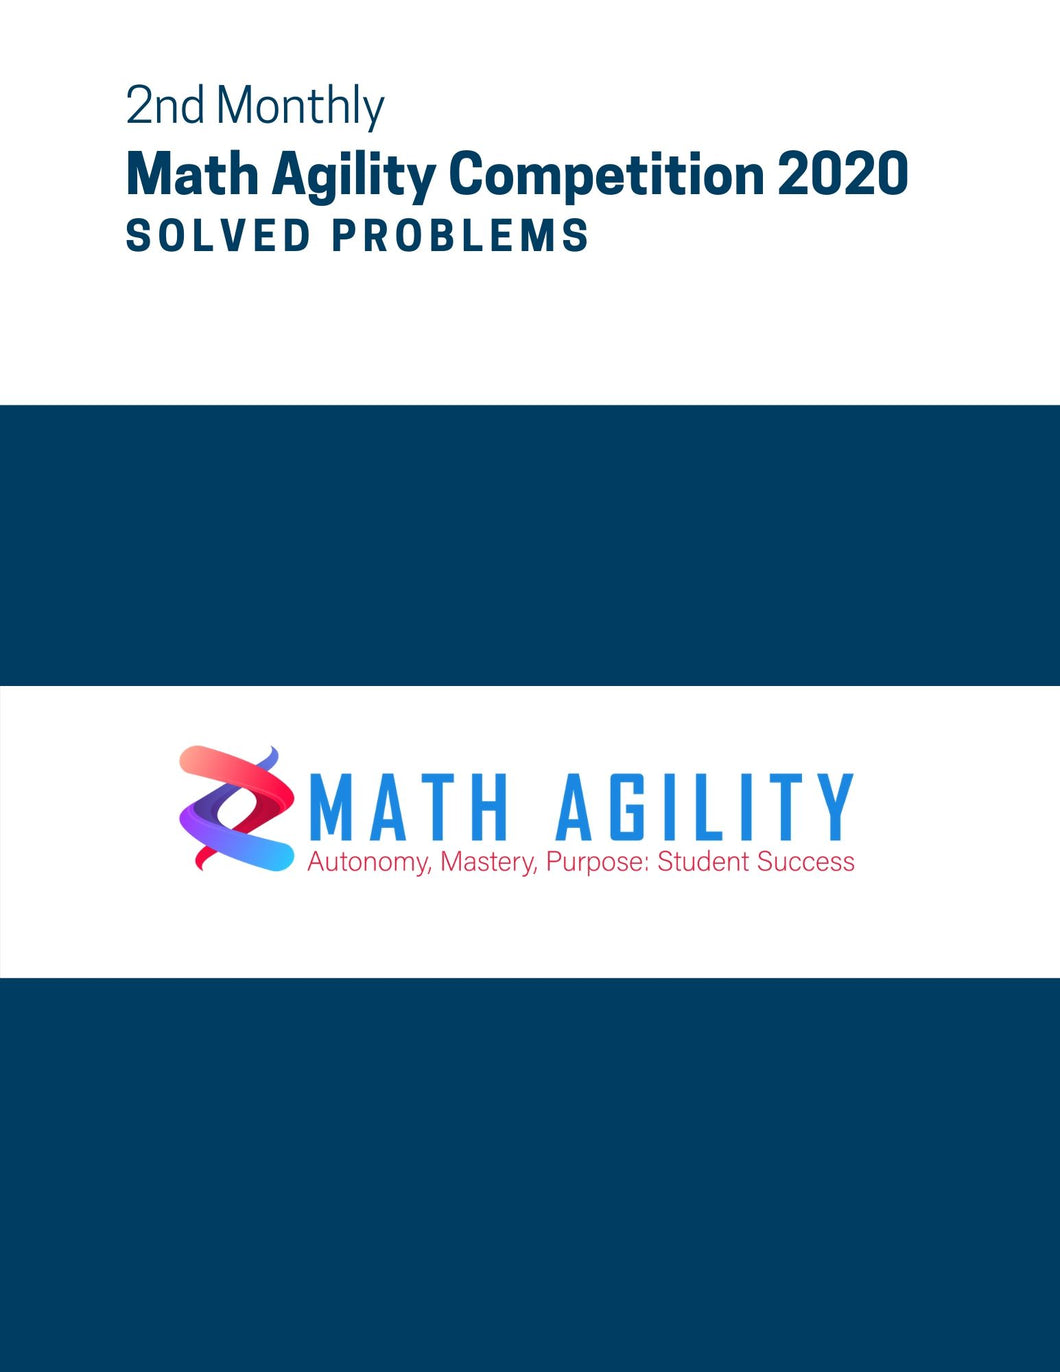 2nd Math Agility Competition 2020 Solved Problems